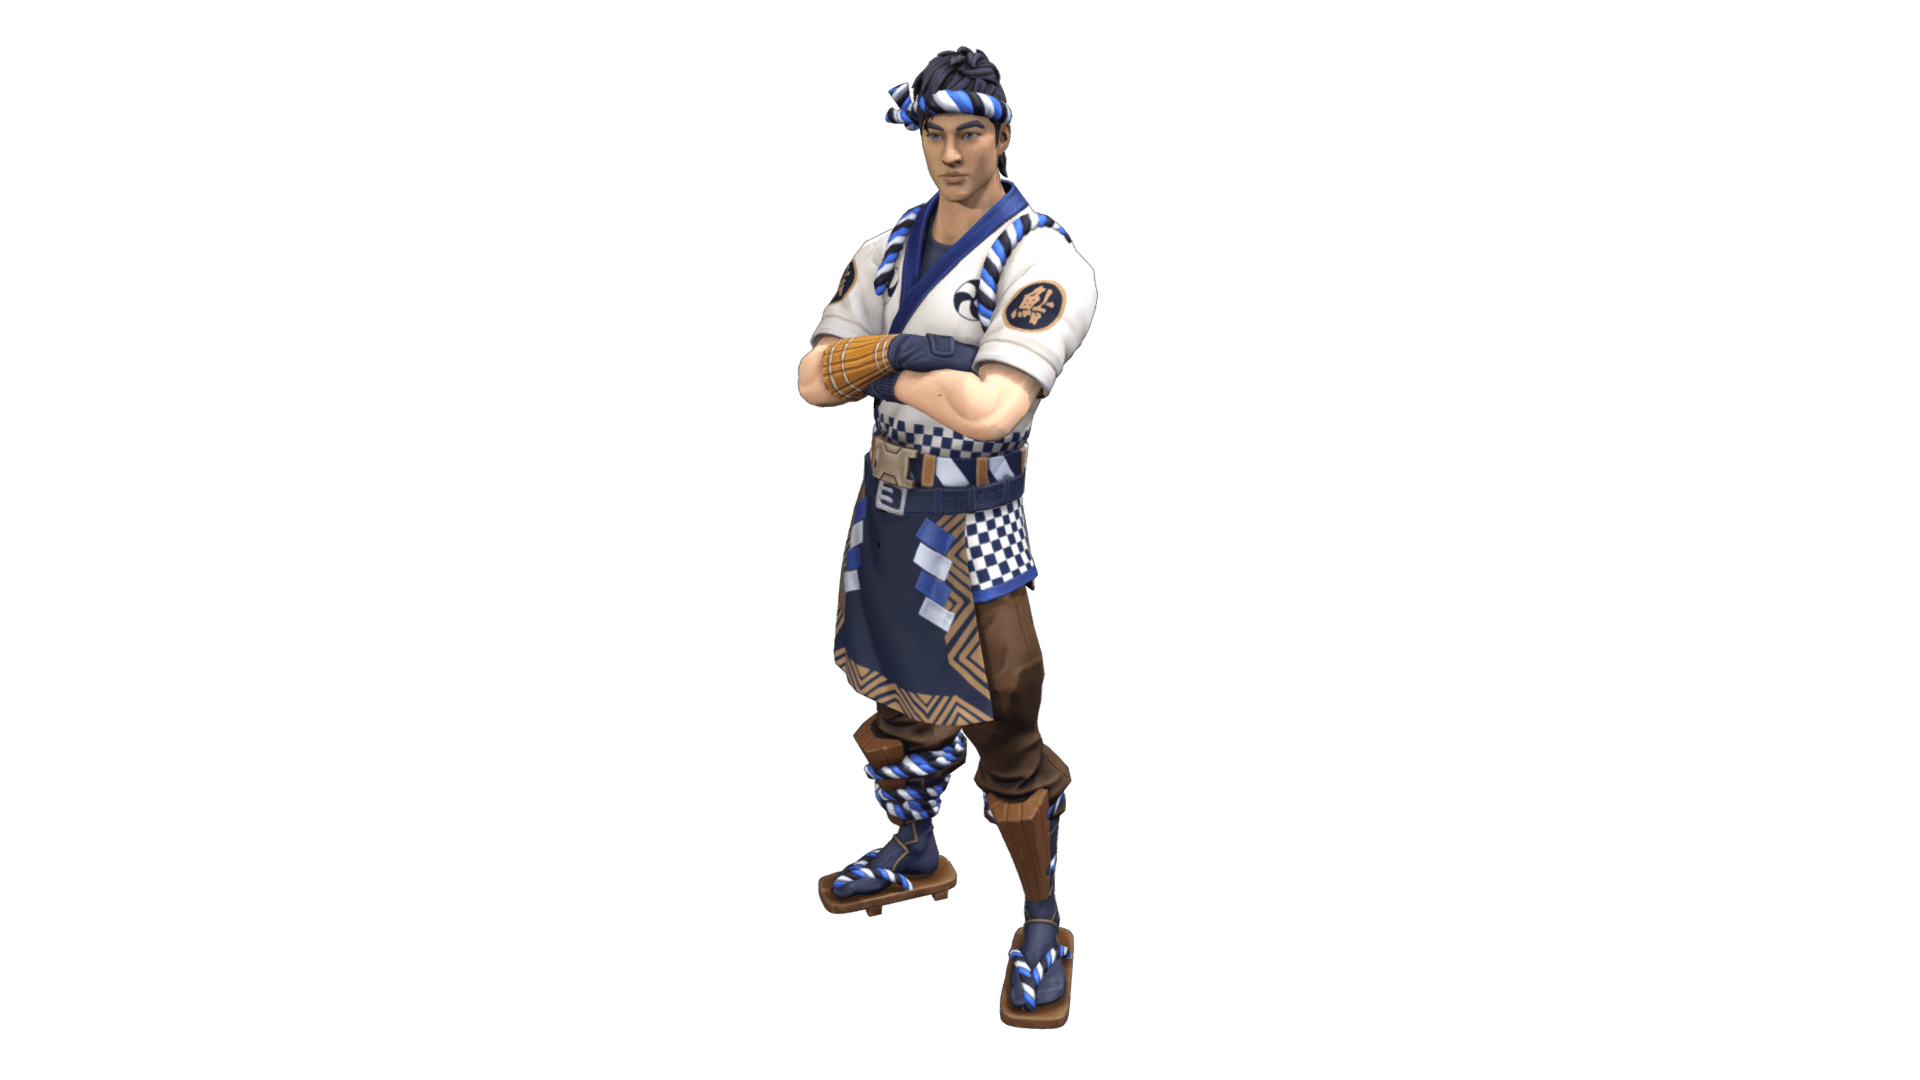 Sushi master outfits skins. Take the l fortnite png png freeuse